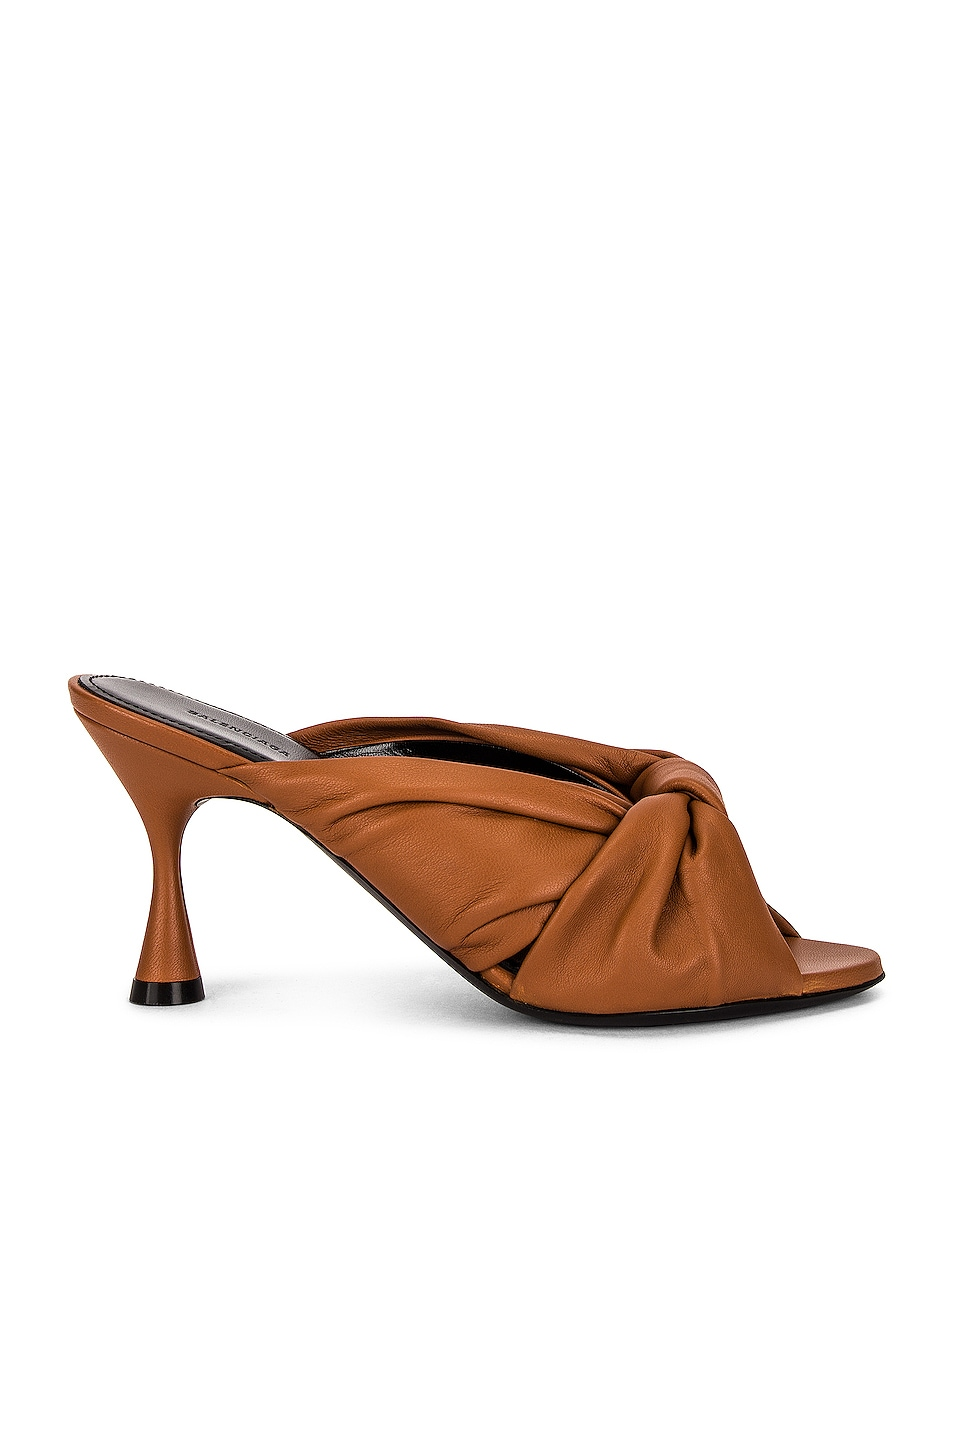 Image 1 of Balenciaga Drapy Sandals in Cognac